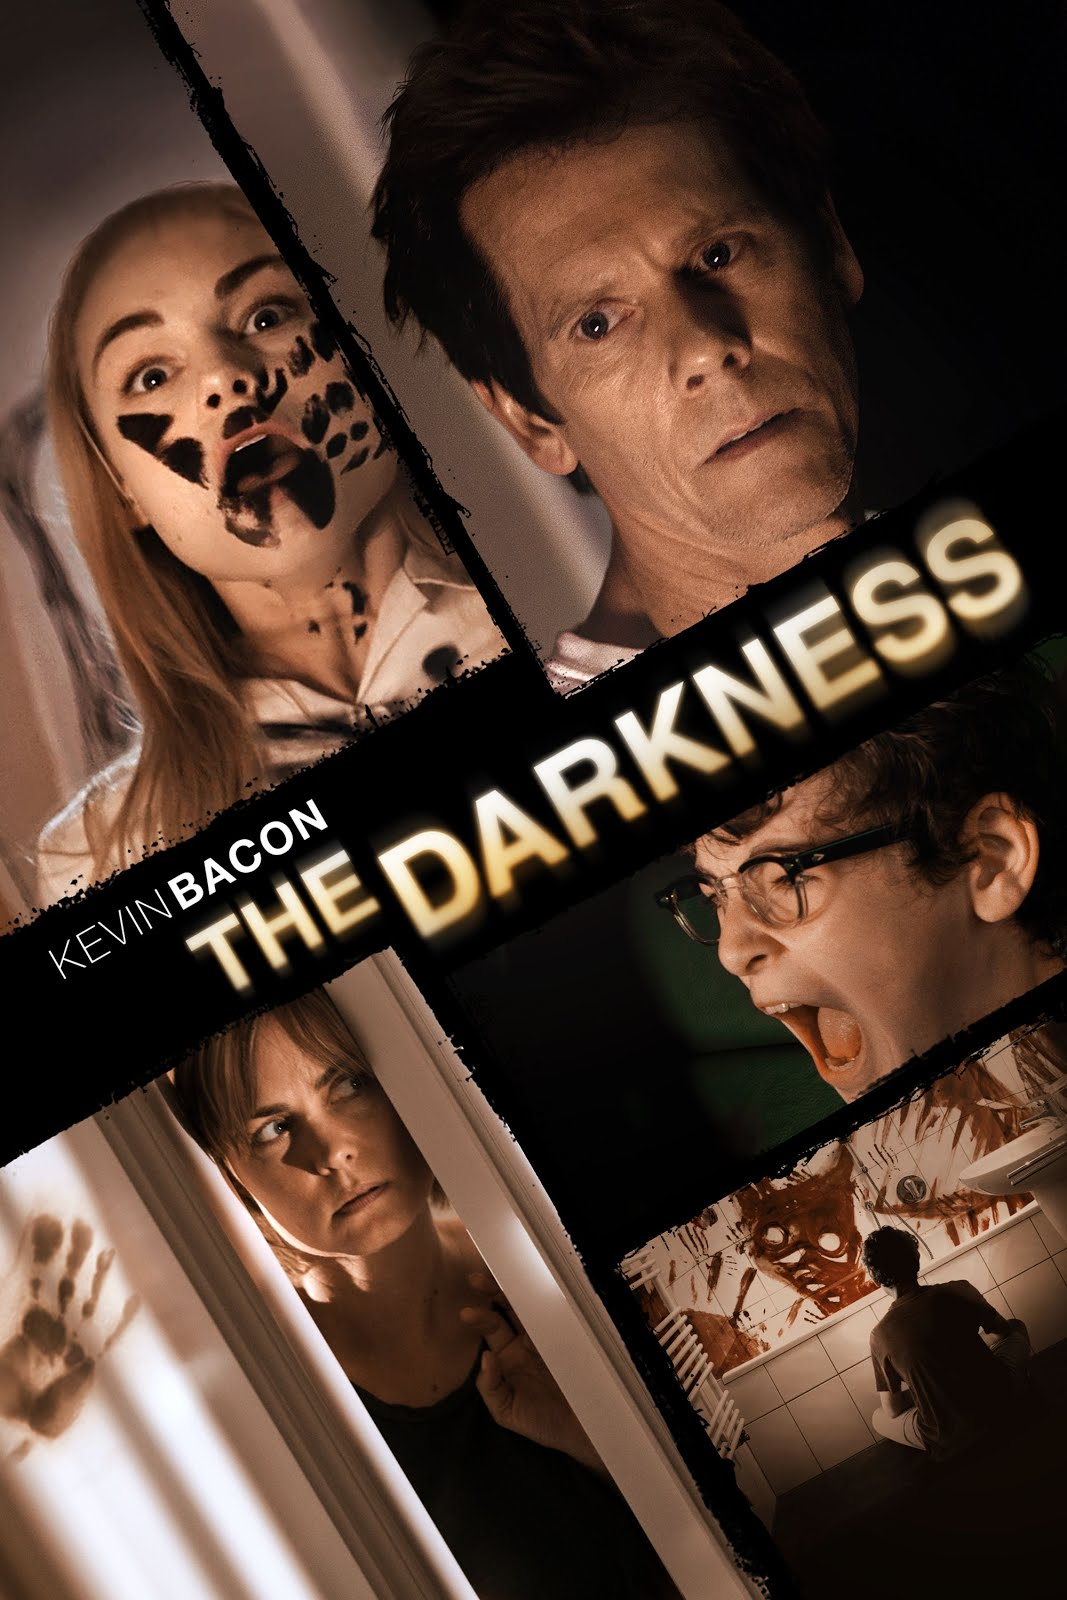 The Darkness 2016 Dual Audio Hindi 300MB BluRay 480p x264 Download